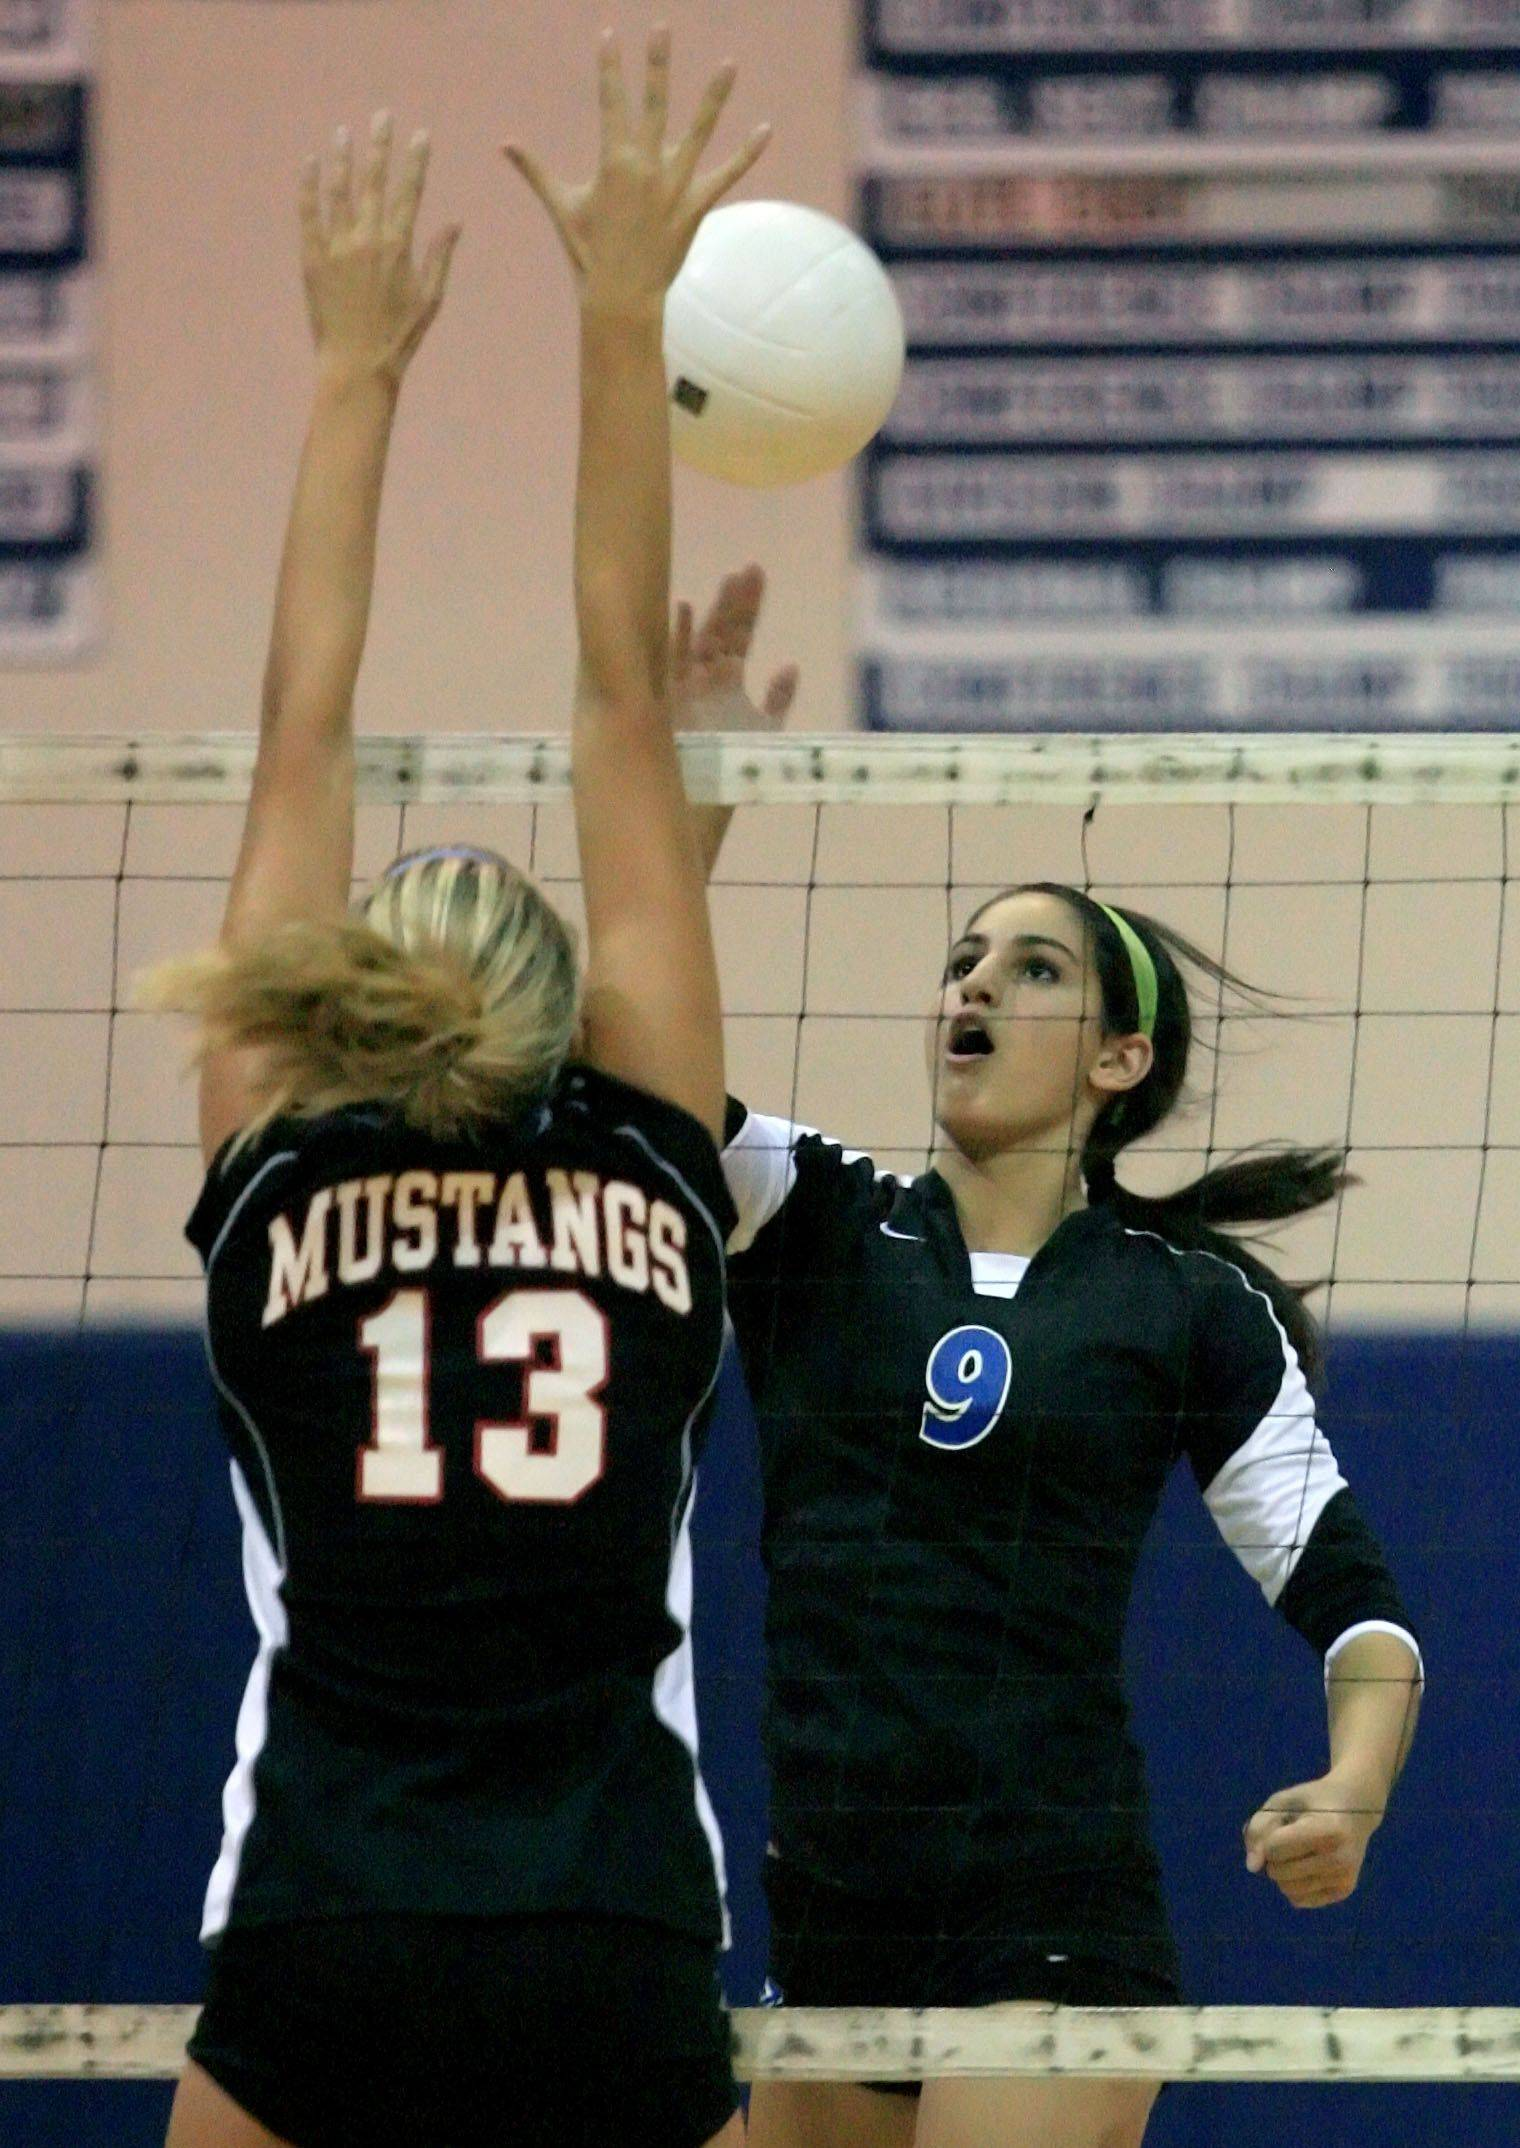 Lake Zurich's Amanda Orchard rises above the net opposite Mundelein's Gina Withrow last season.